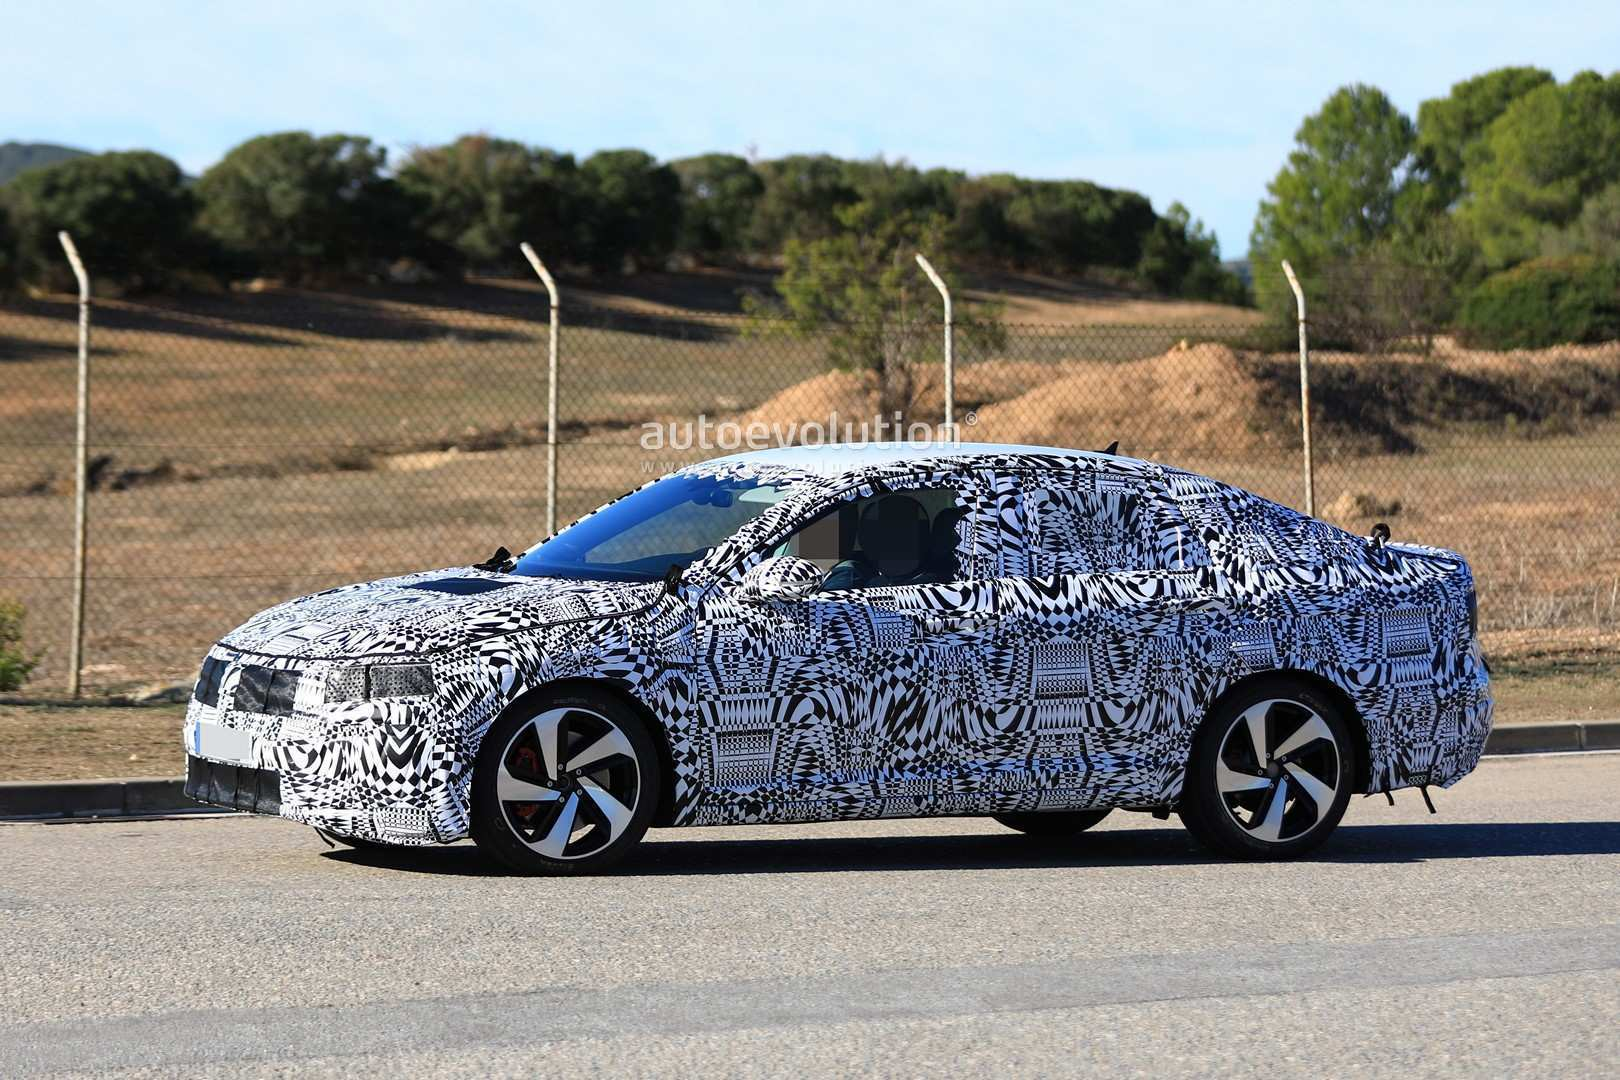 58 New 2019 Jetta Spy Shots Interior with 2019 Jetta Spy Shots